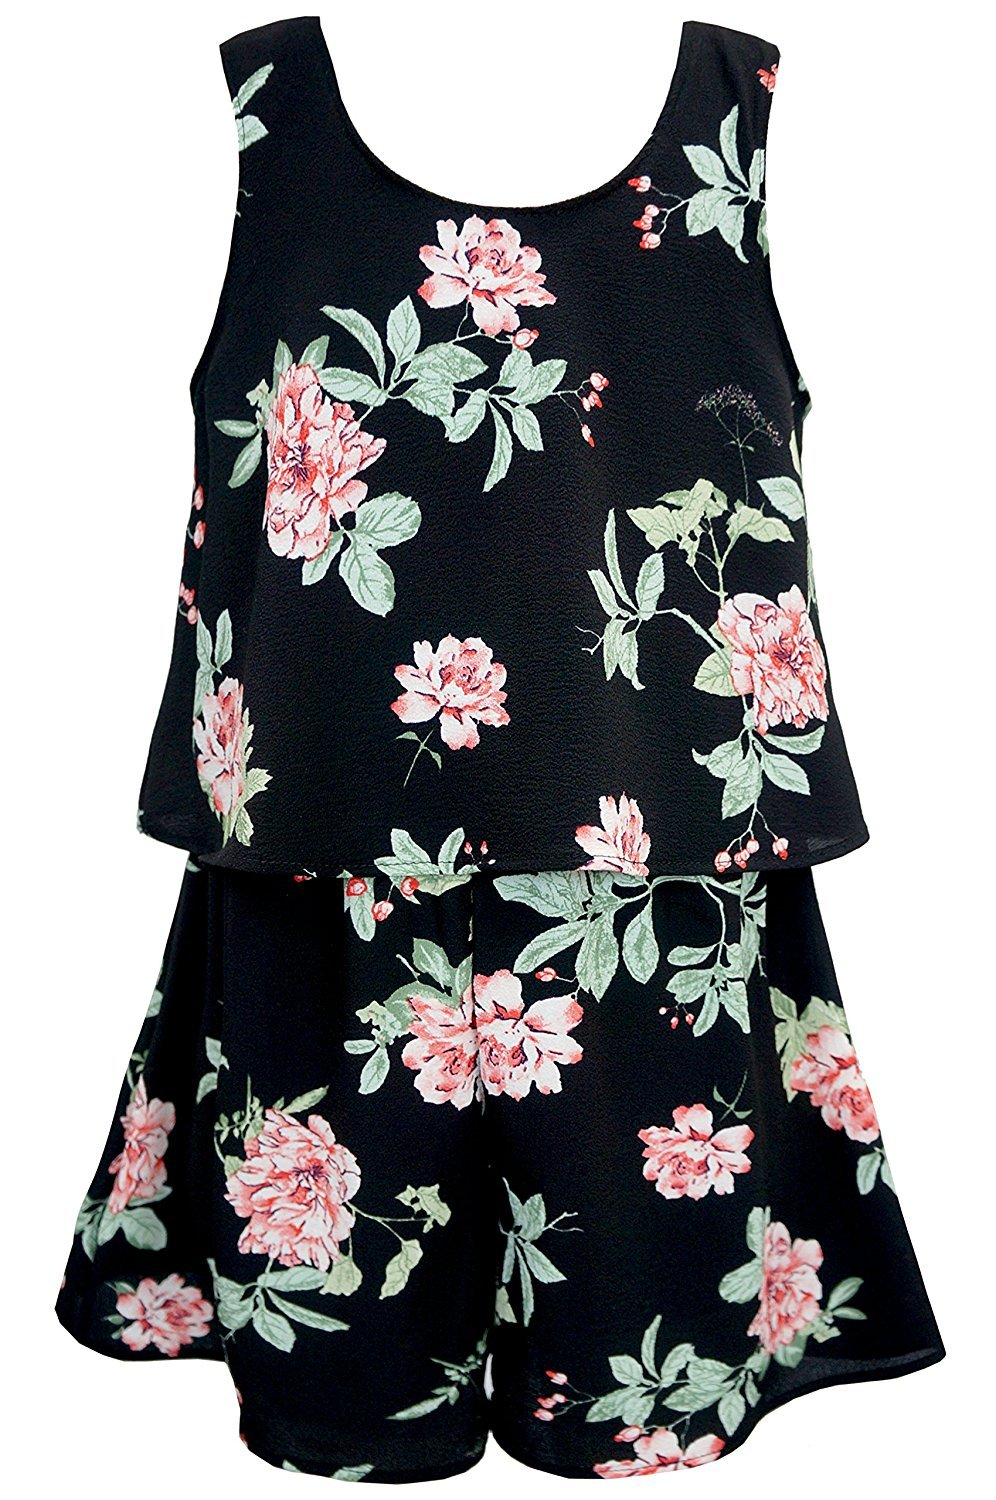 Truly Me, Big Girls Tween Sweet Floral Romper (Many Options), 7-16 (10, Black Floral)